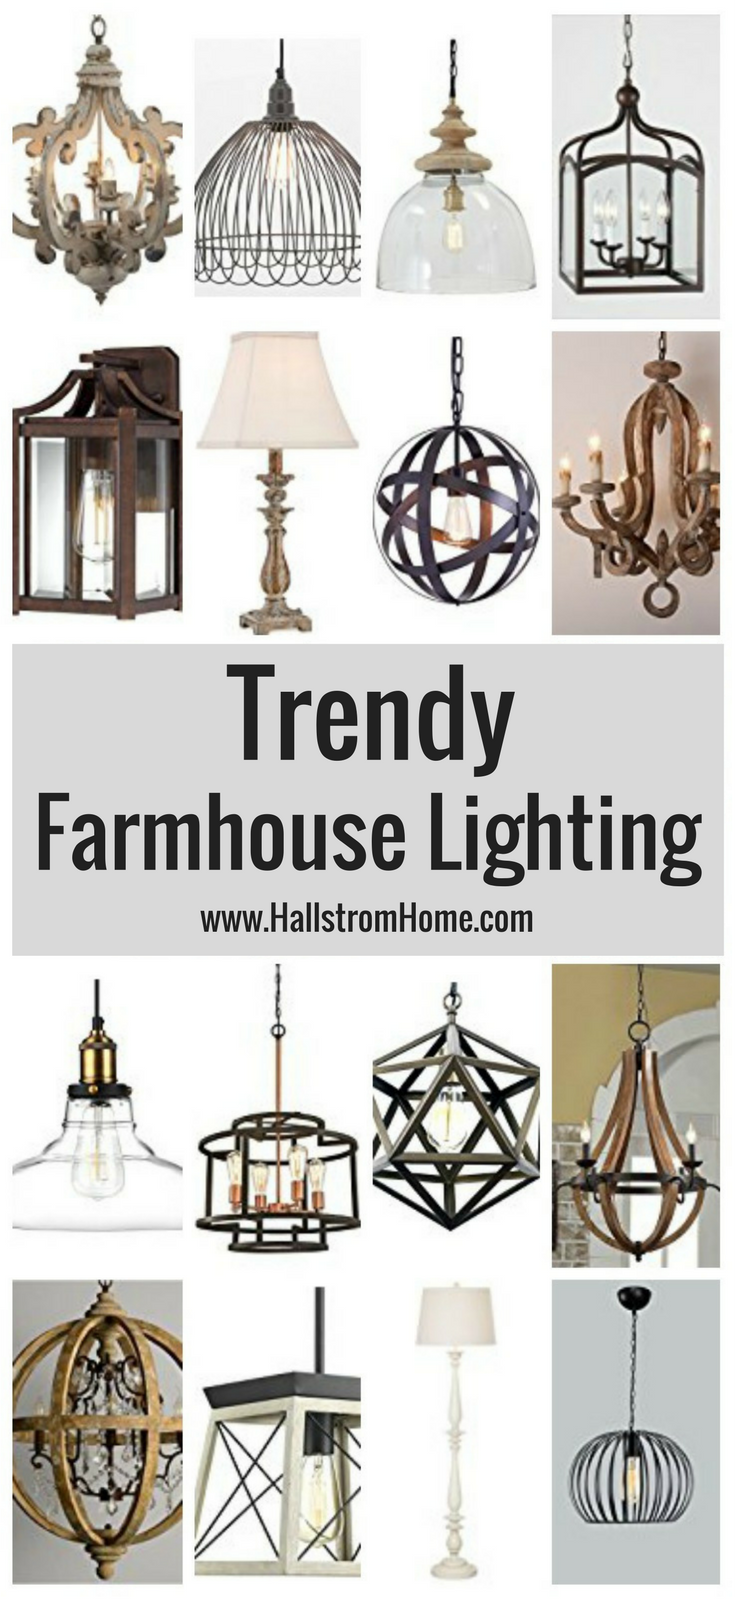 The Best Farmhouse Lighting On Amazon Hallstrom Home Farmhouse Dining Room Lighting Apartment Lighting Farmhouse Lighting